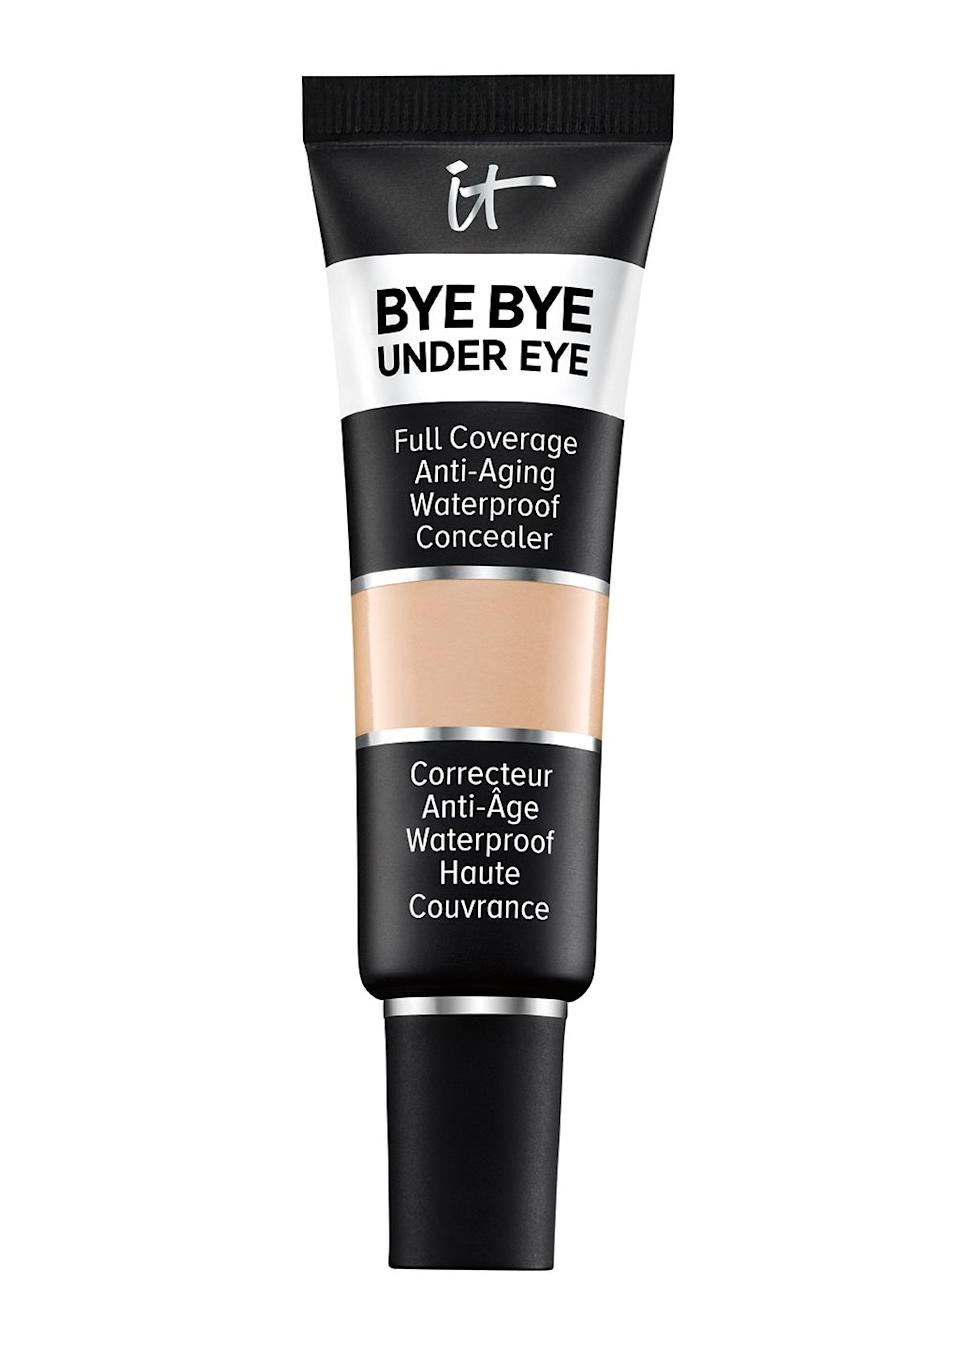 """<p>""""It does wonders for brightening the under eye area. It's a good product for layering — I can go light or heavy depending on what kind of coverage I'm hoping to achieve. Since the skin around the eyes is so thin and fragile, I use gentle patting motions to press and blend it in.""""</p> <p><strong>Buy It!</strong> IT Cosmetics Bye Bye Under Eye Concealer, $28; <a href=""""https://www.itcosmetics.com/makeup/face-makeup/under-eye-concealer/bye-bye-under-eye-anti-aging-concealer/ITC_0005.html"""" rel=""""sponsored noopener"""" target=""""_blank"""" data-ylk=""""slk:itcosmetics.com"""" class=""""link rapid-noclick-resp"""">itcosmetics.com</a></p>"""